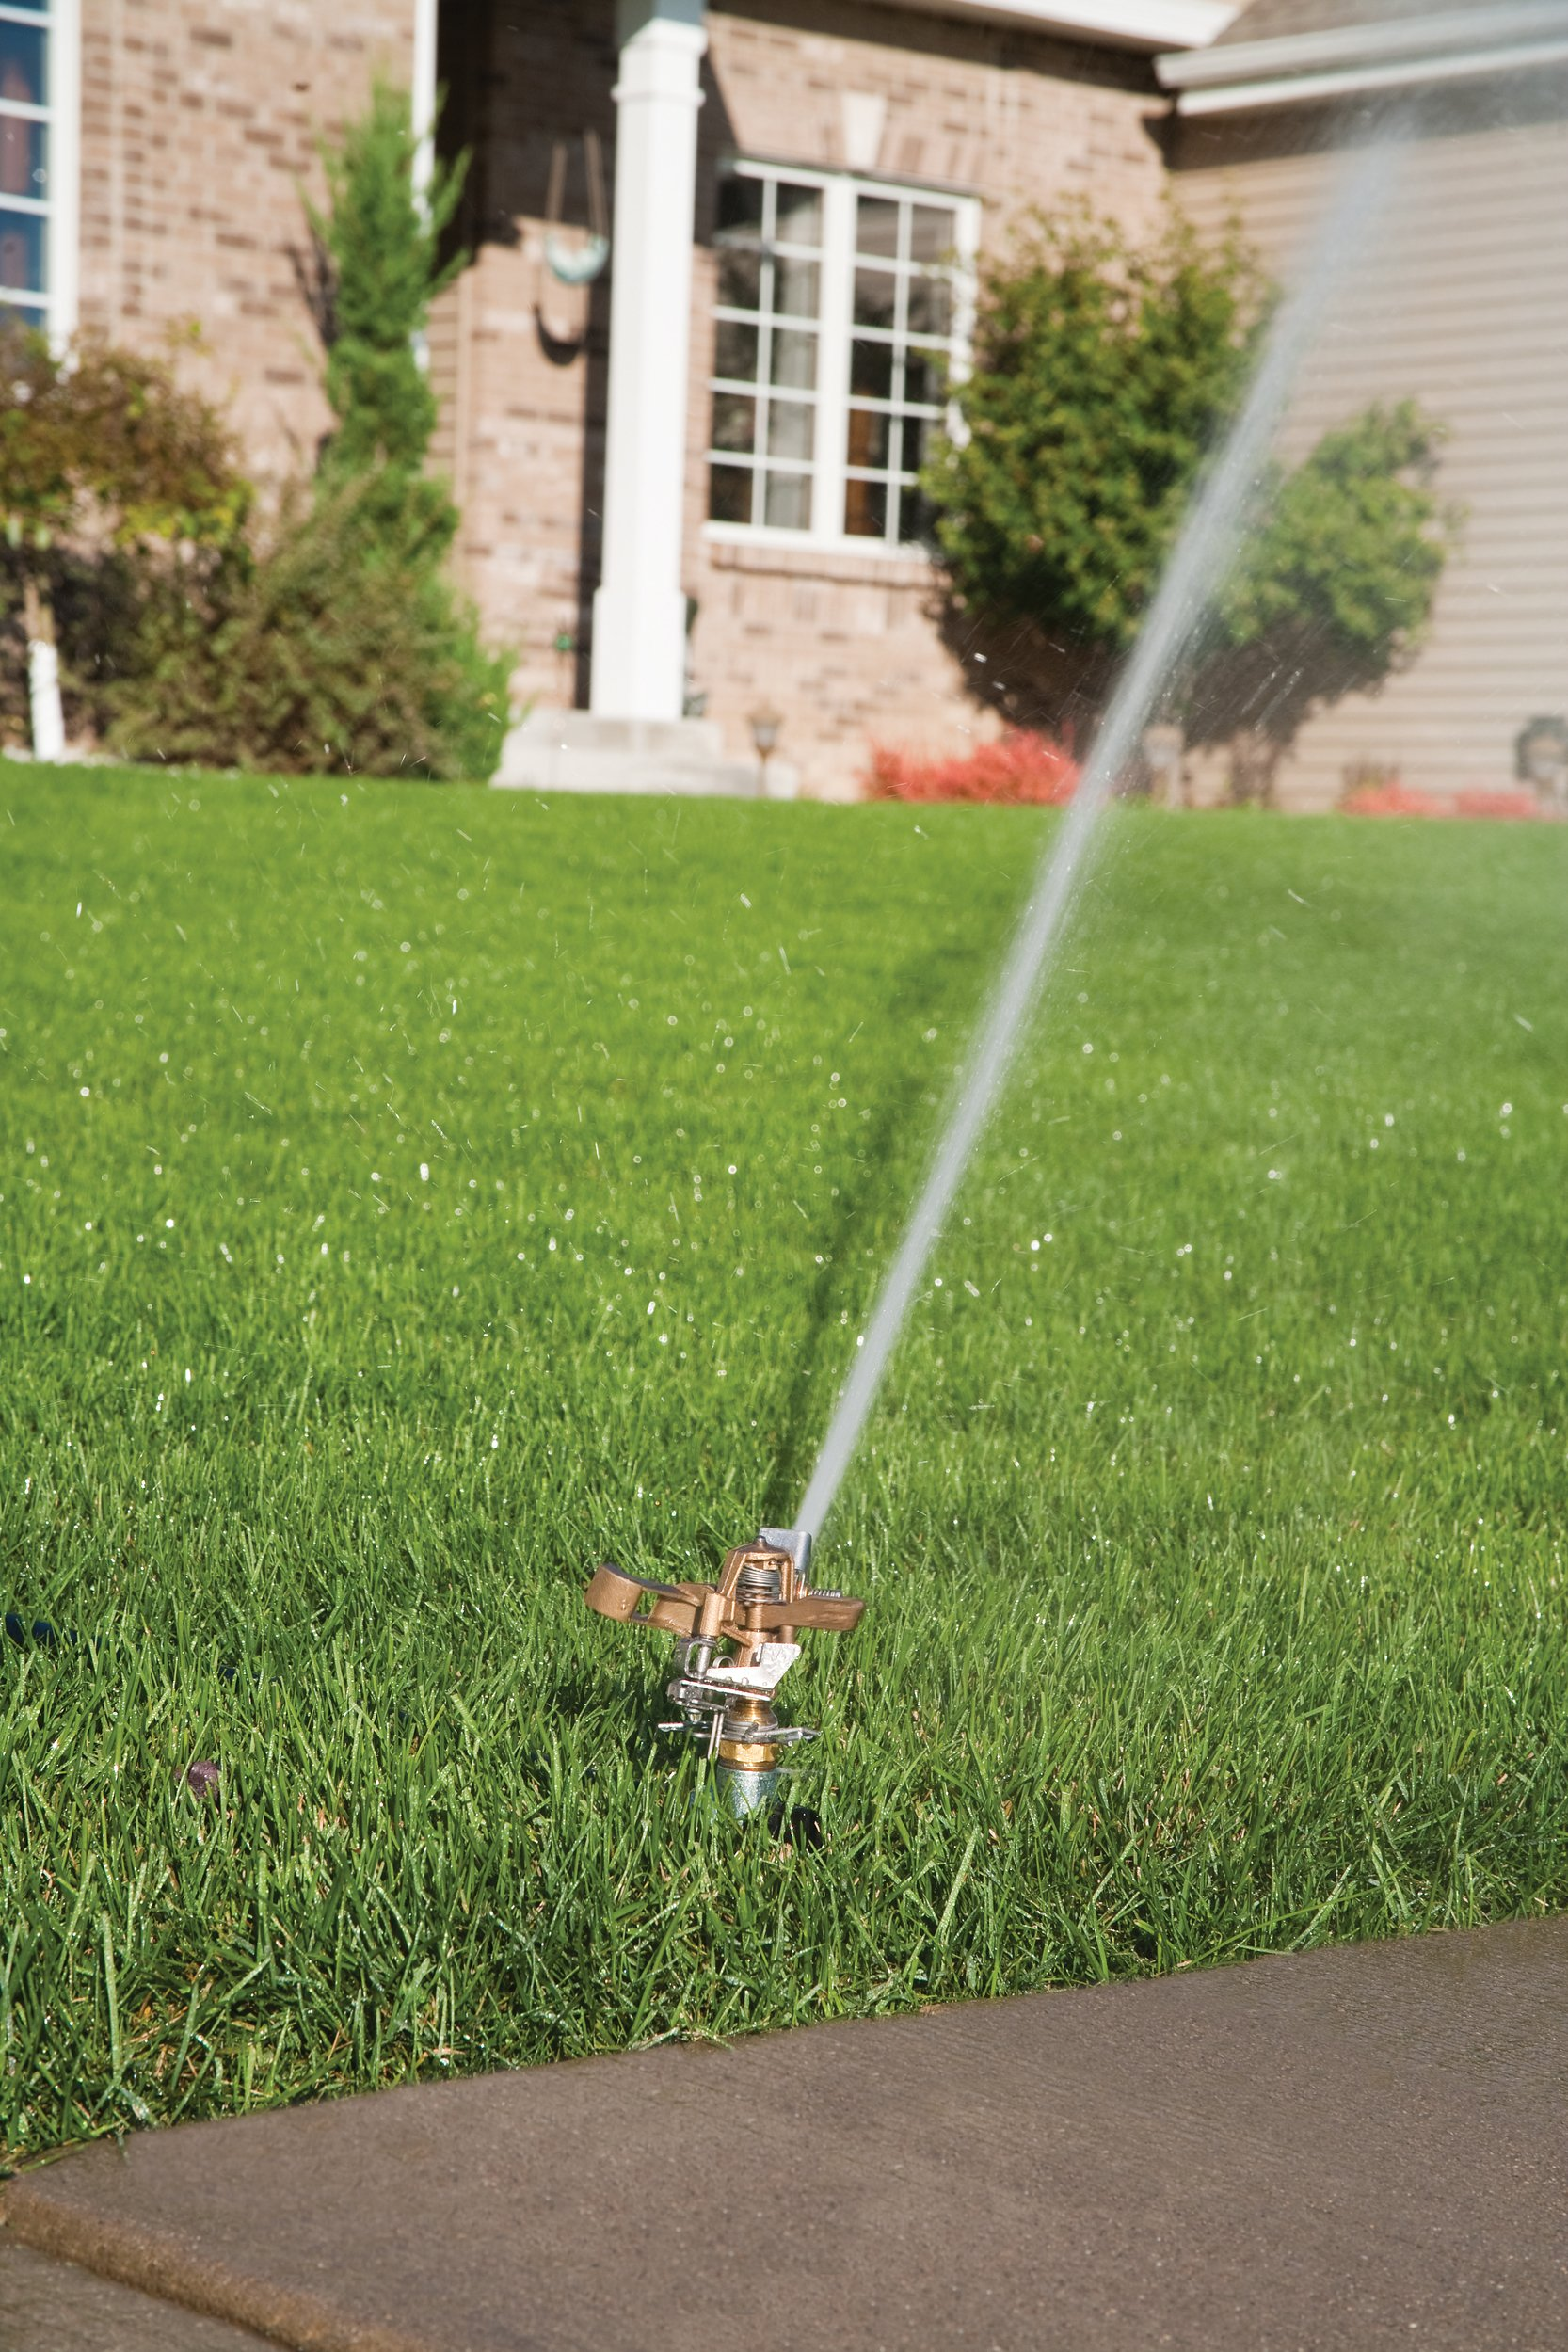 Rain Bird 25PJLSP Hose-End Brass Impact Sprinkler on Large Spike, Adjustable 20° - 360° Pattern, 20-41' Spray Distance